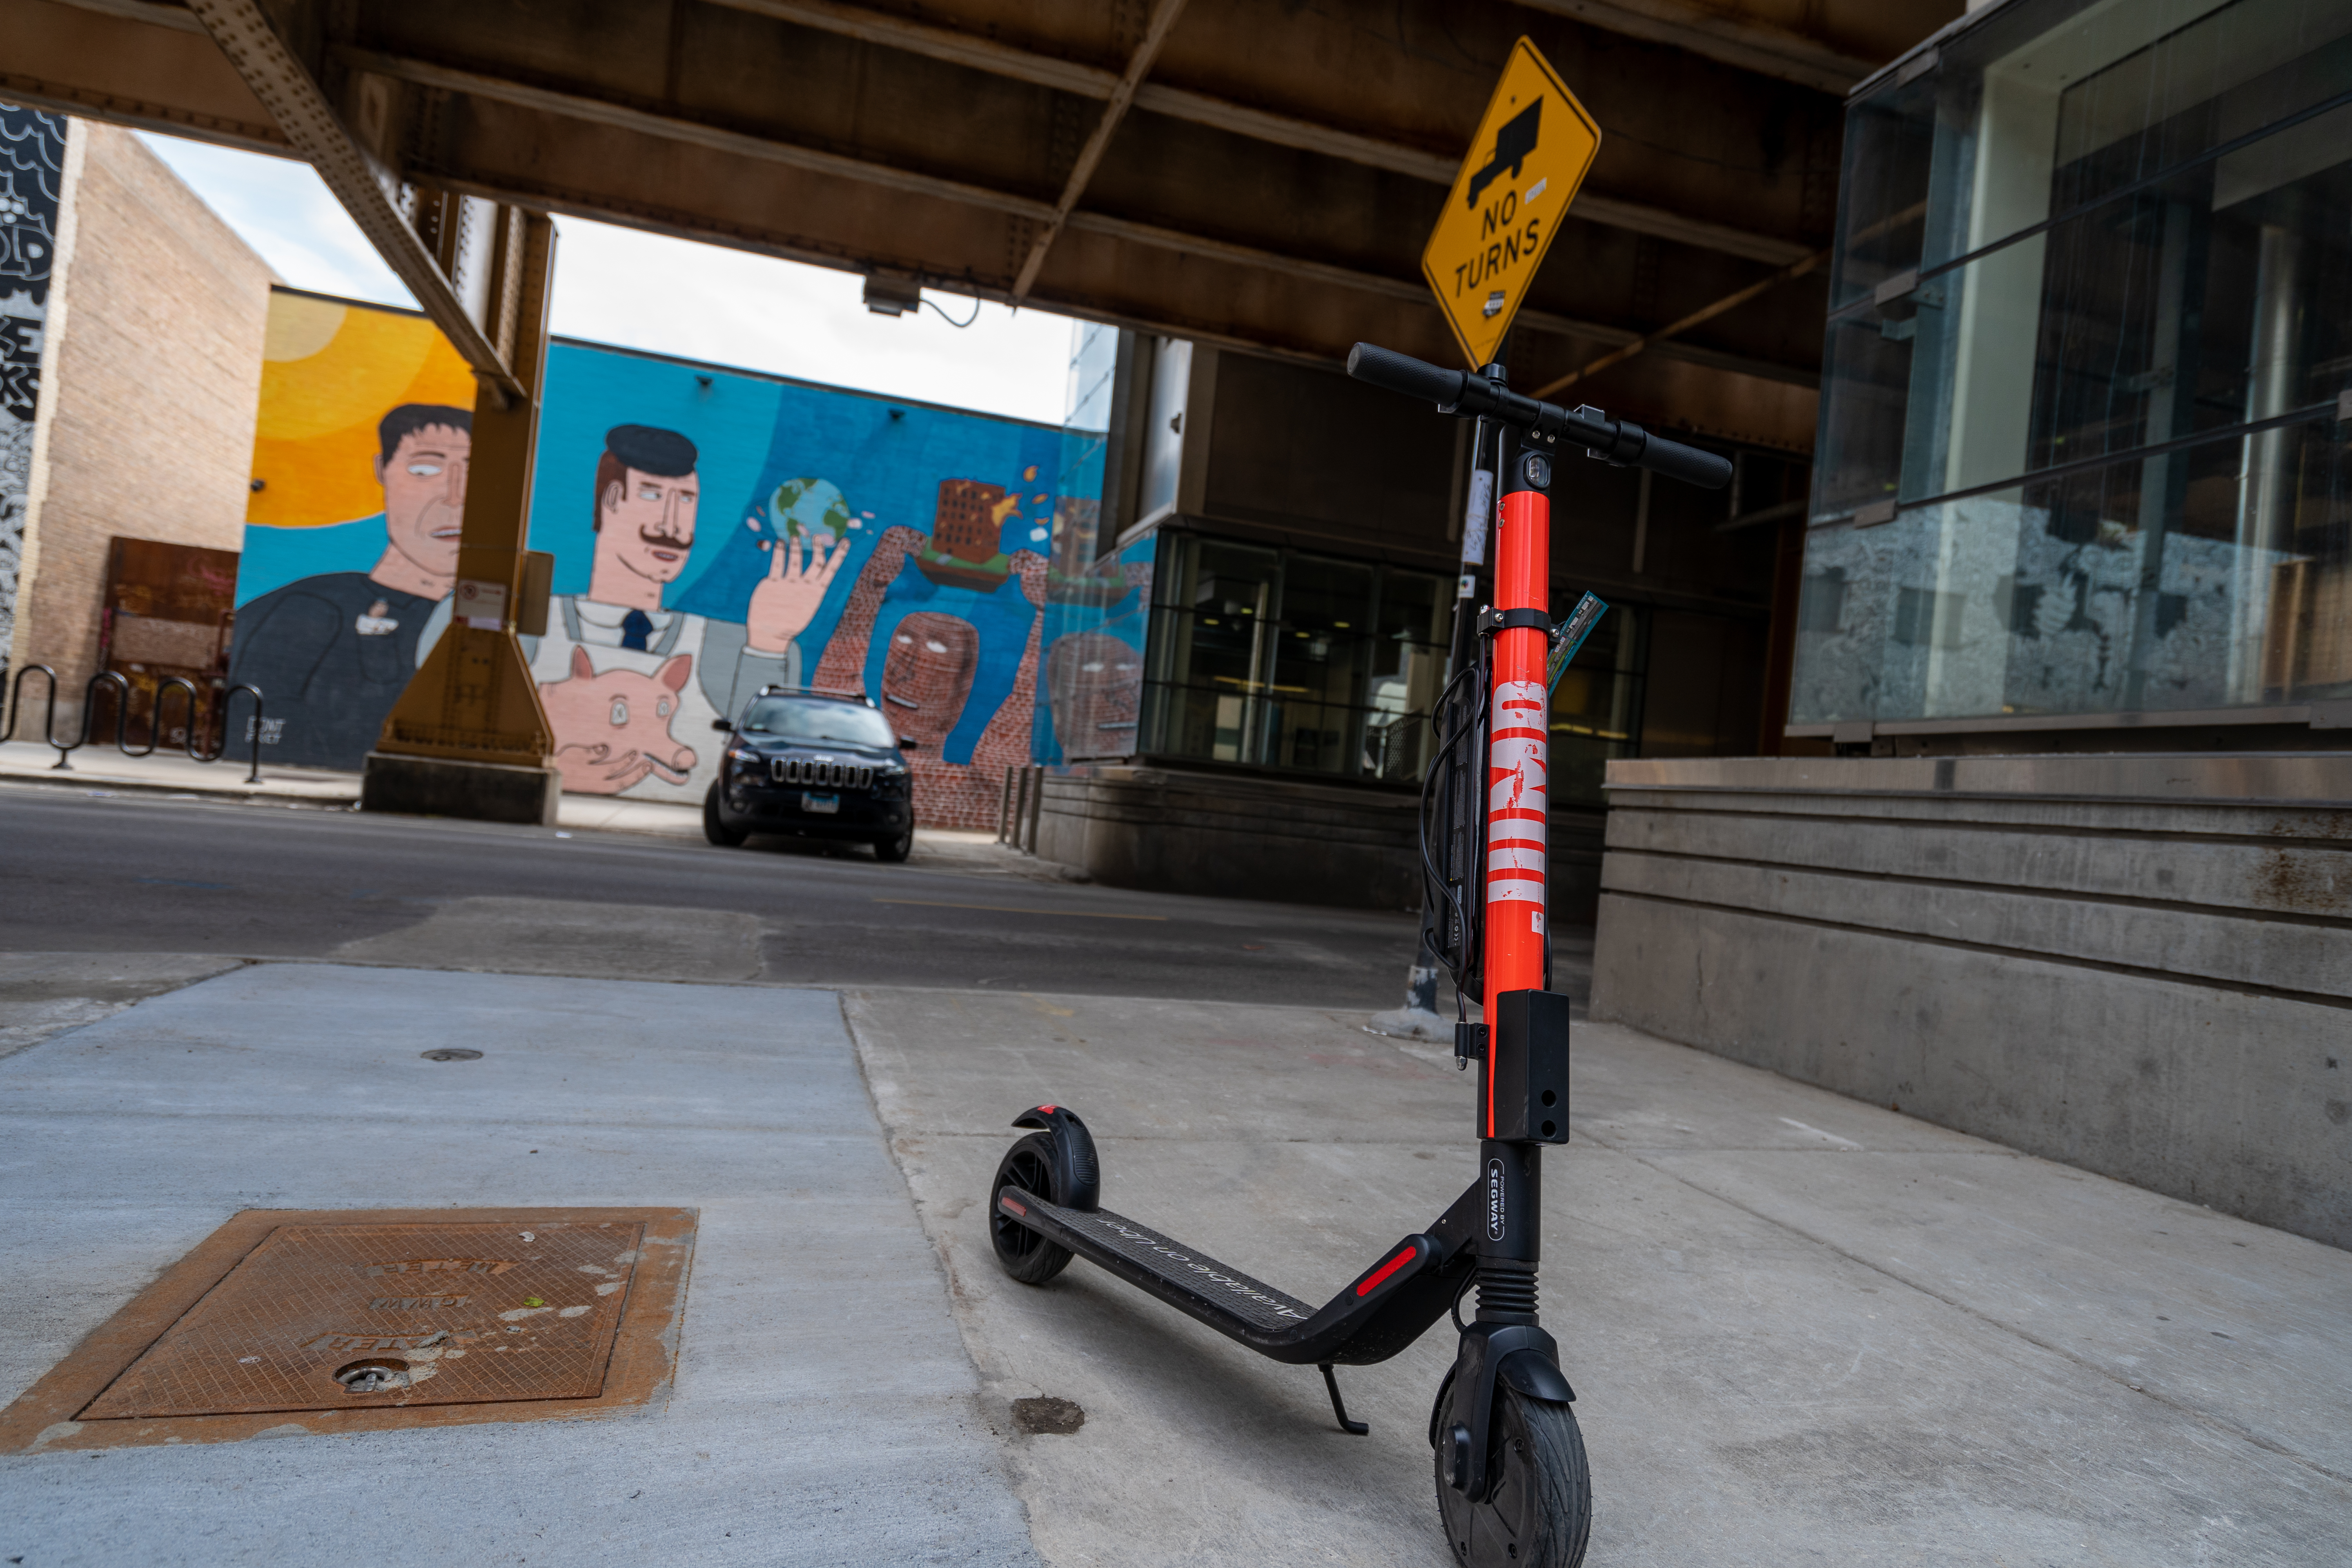 A Jump e-scooter parked on the sidewalk corner near L tracks with a colorful mural in the background